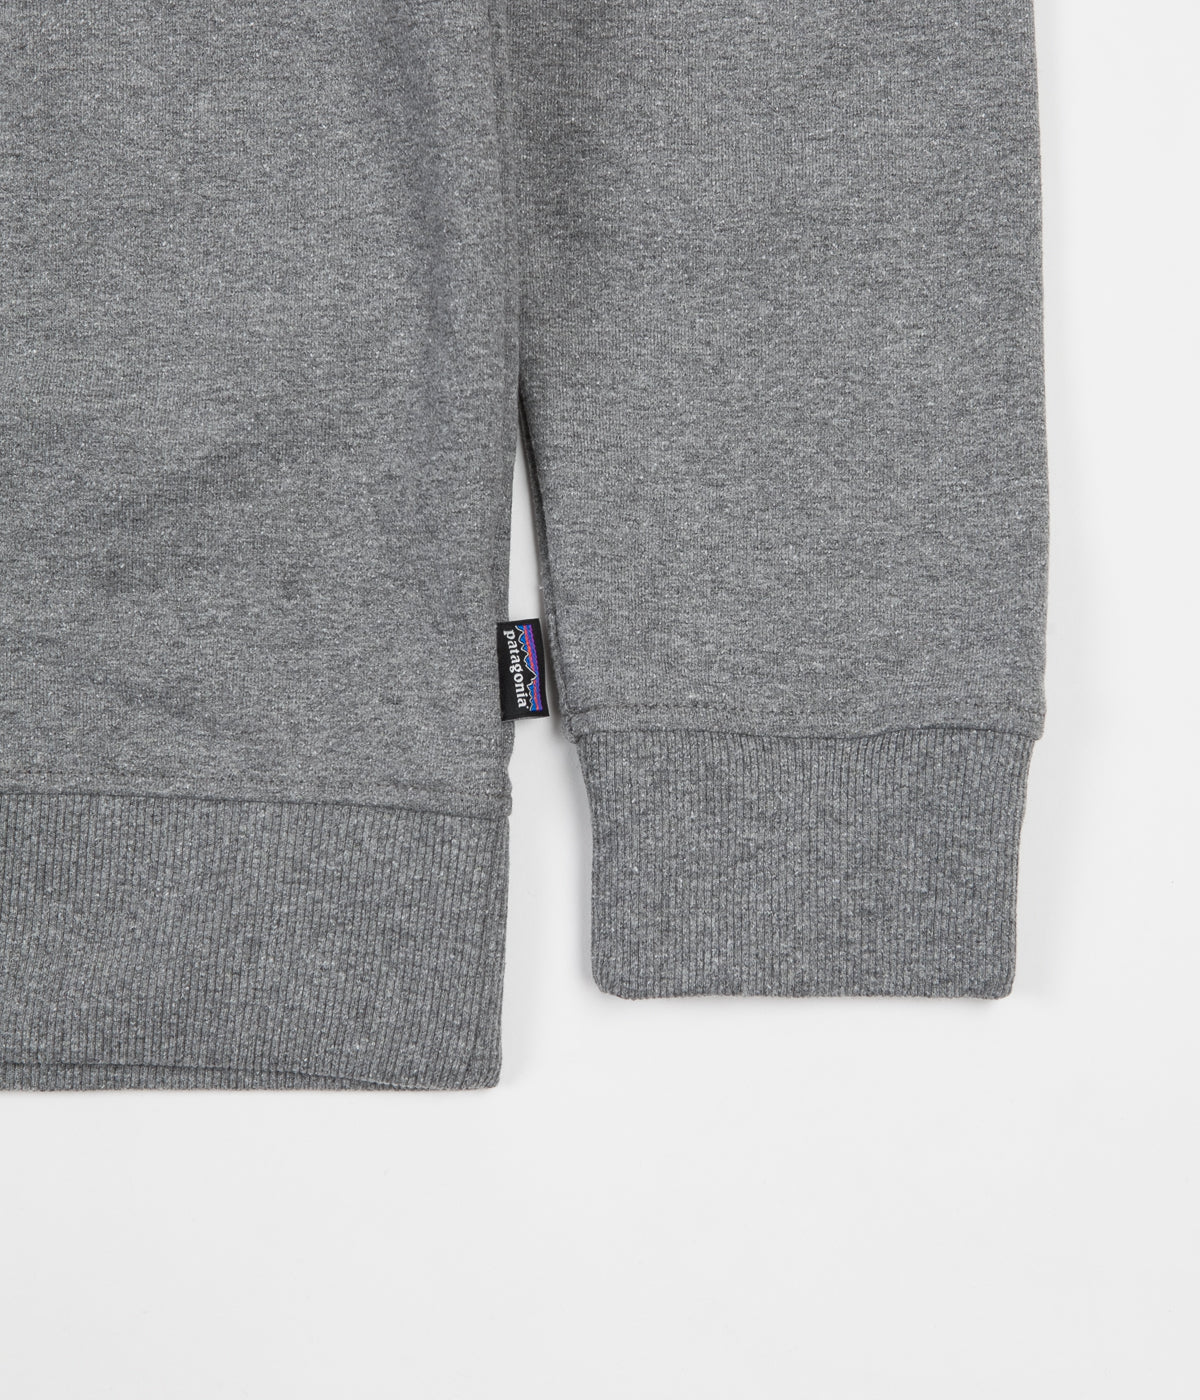 Patagonia P-6 Label Uprisal Crewneck Sweatshirt - Gravel Heather